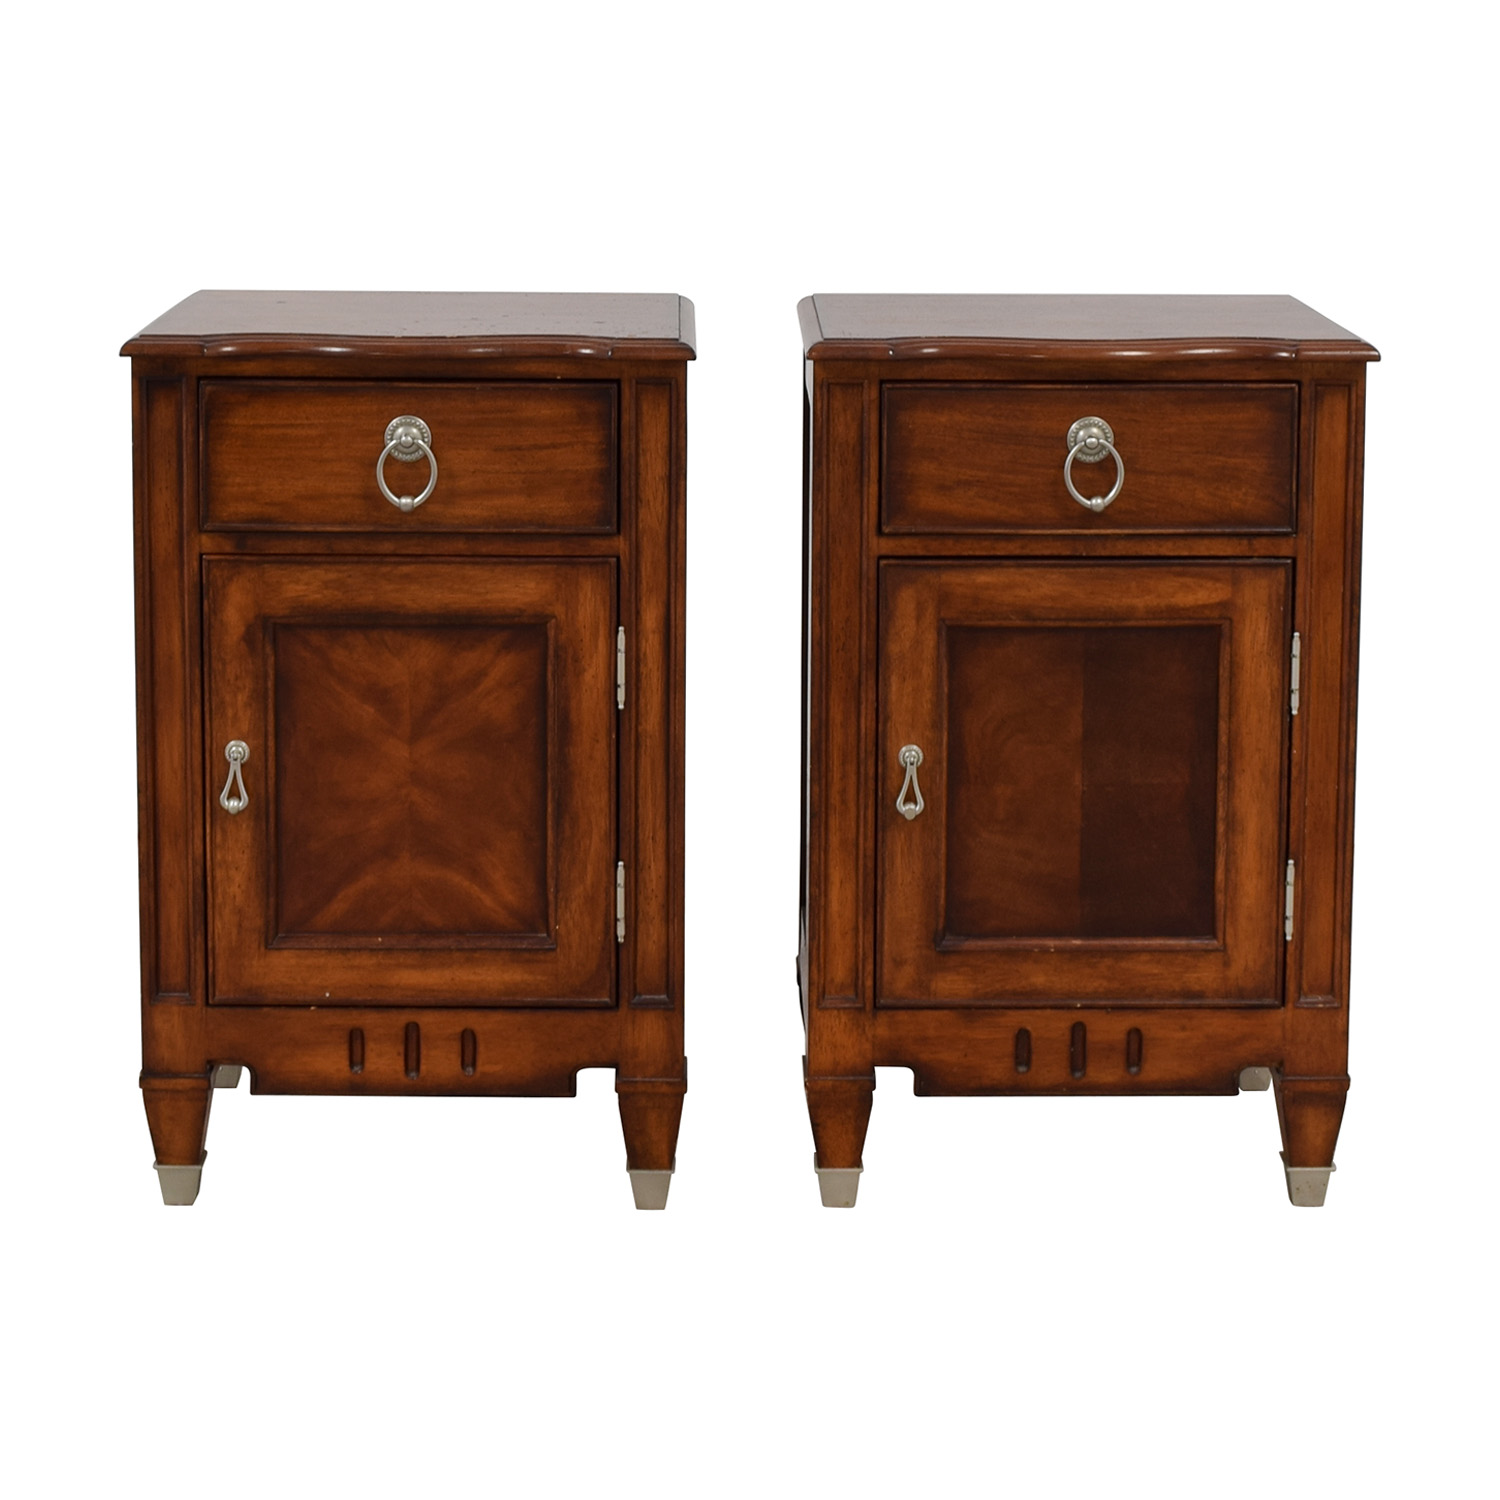 Ethan Allen Liz Claiborne Nightstands on sale